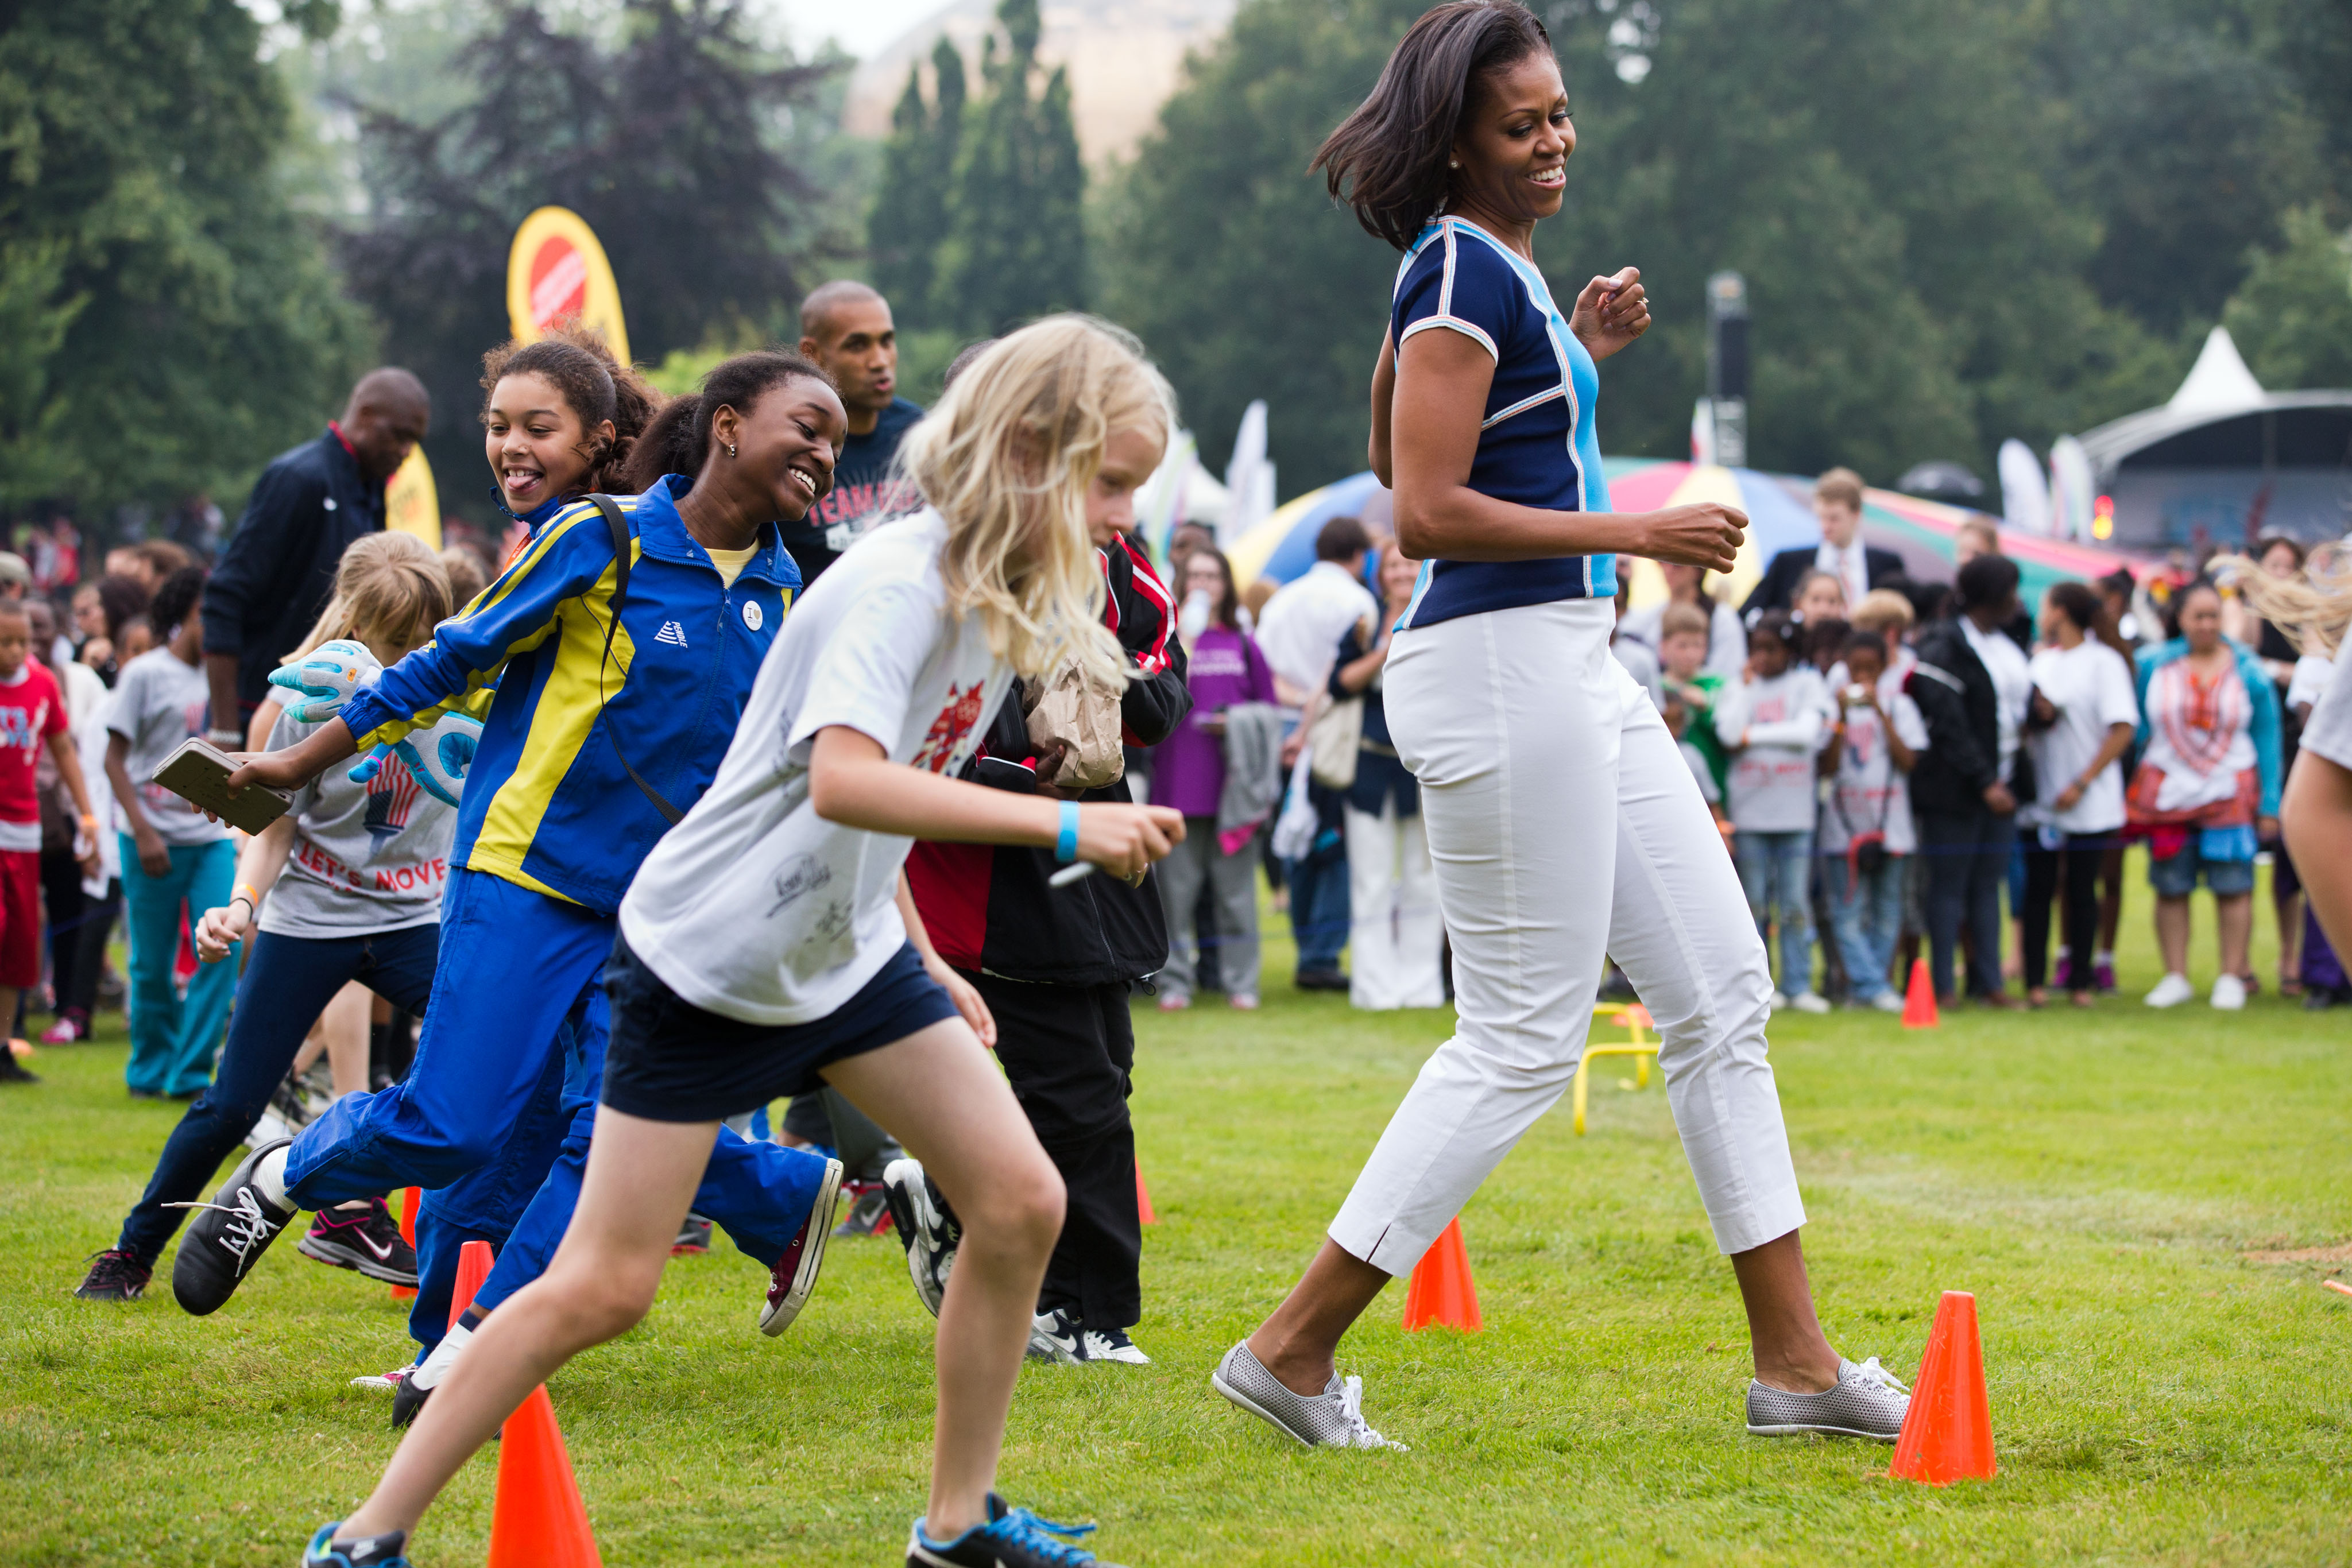 7b3cc03f25c9 ... First Lady Michelle Obama runs at an activity station during a ...